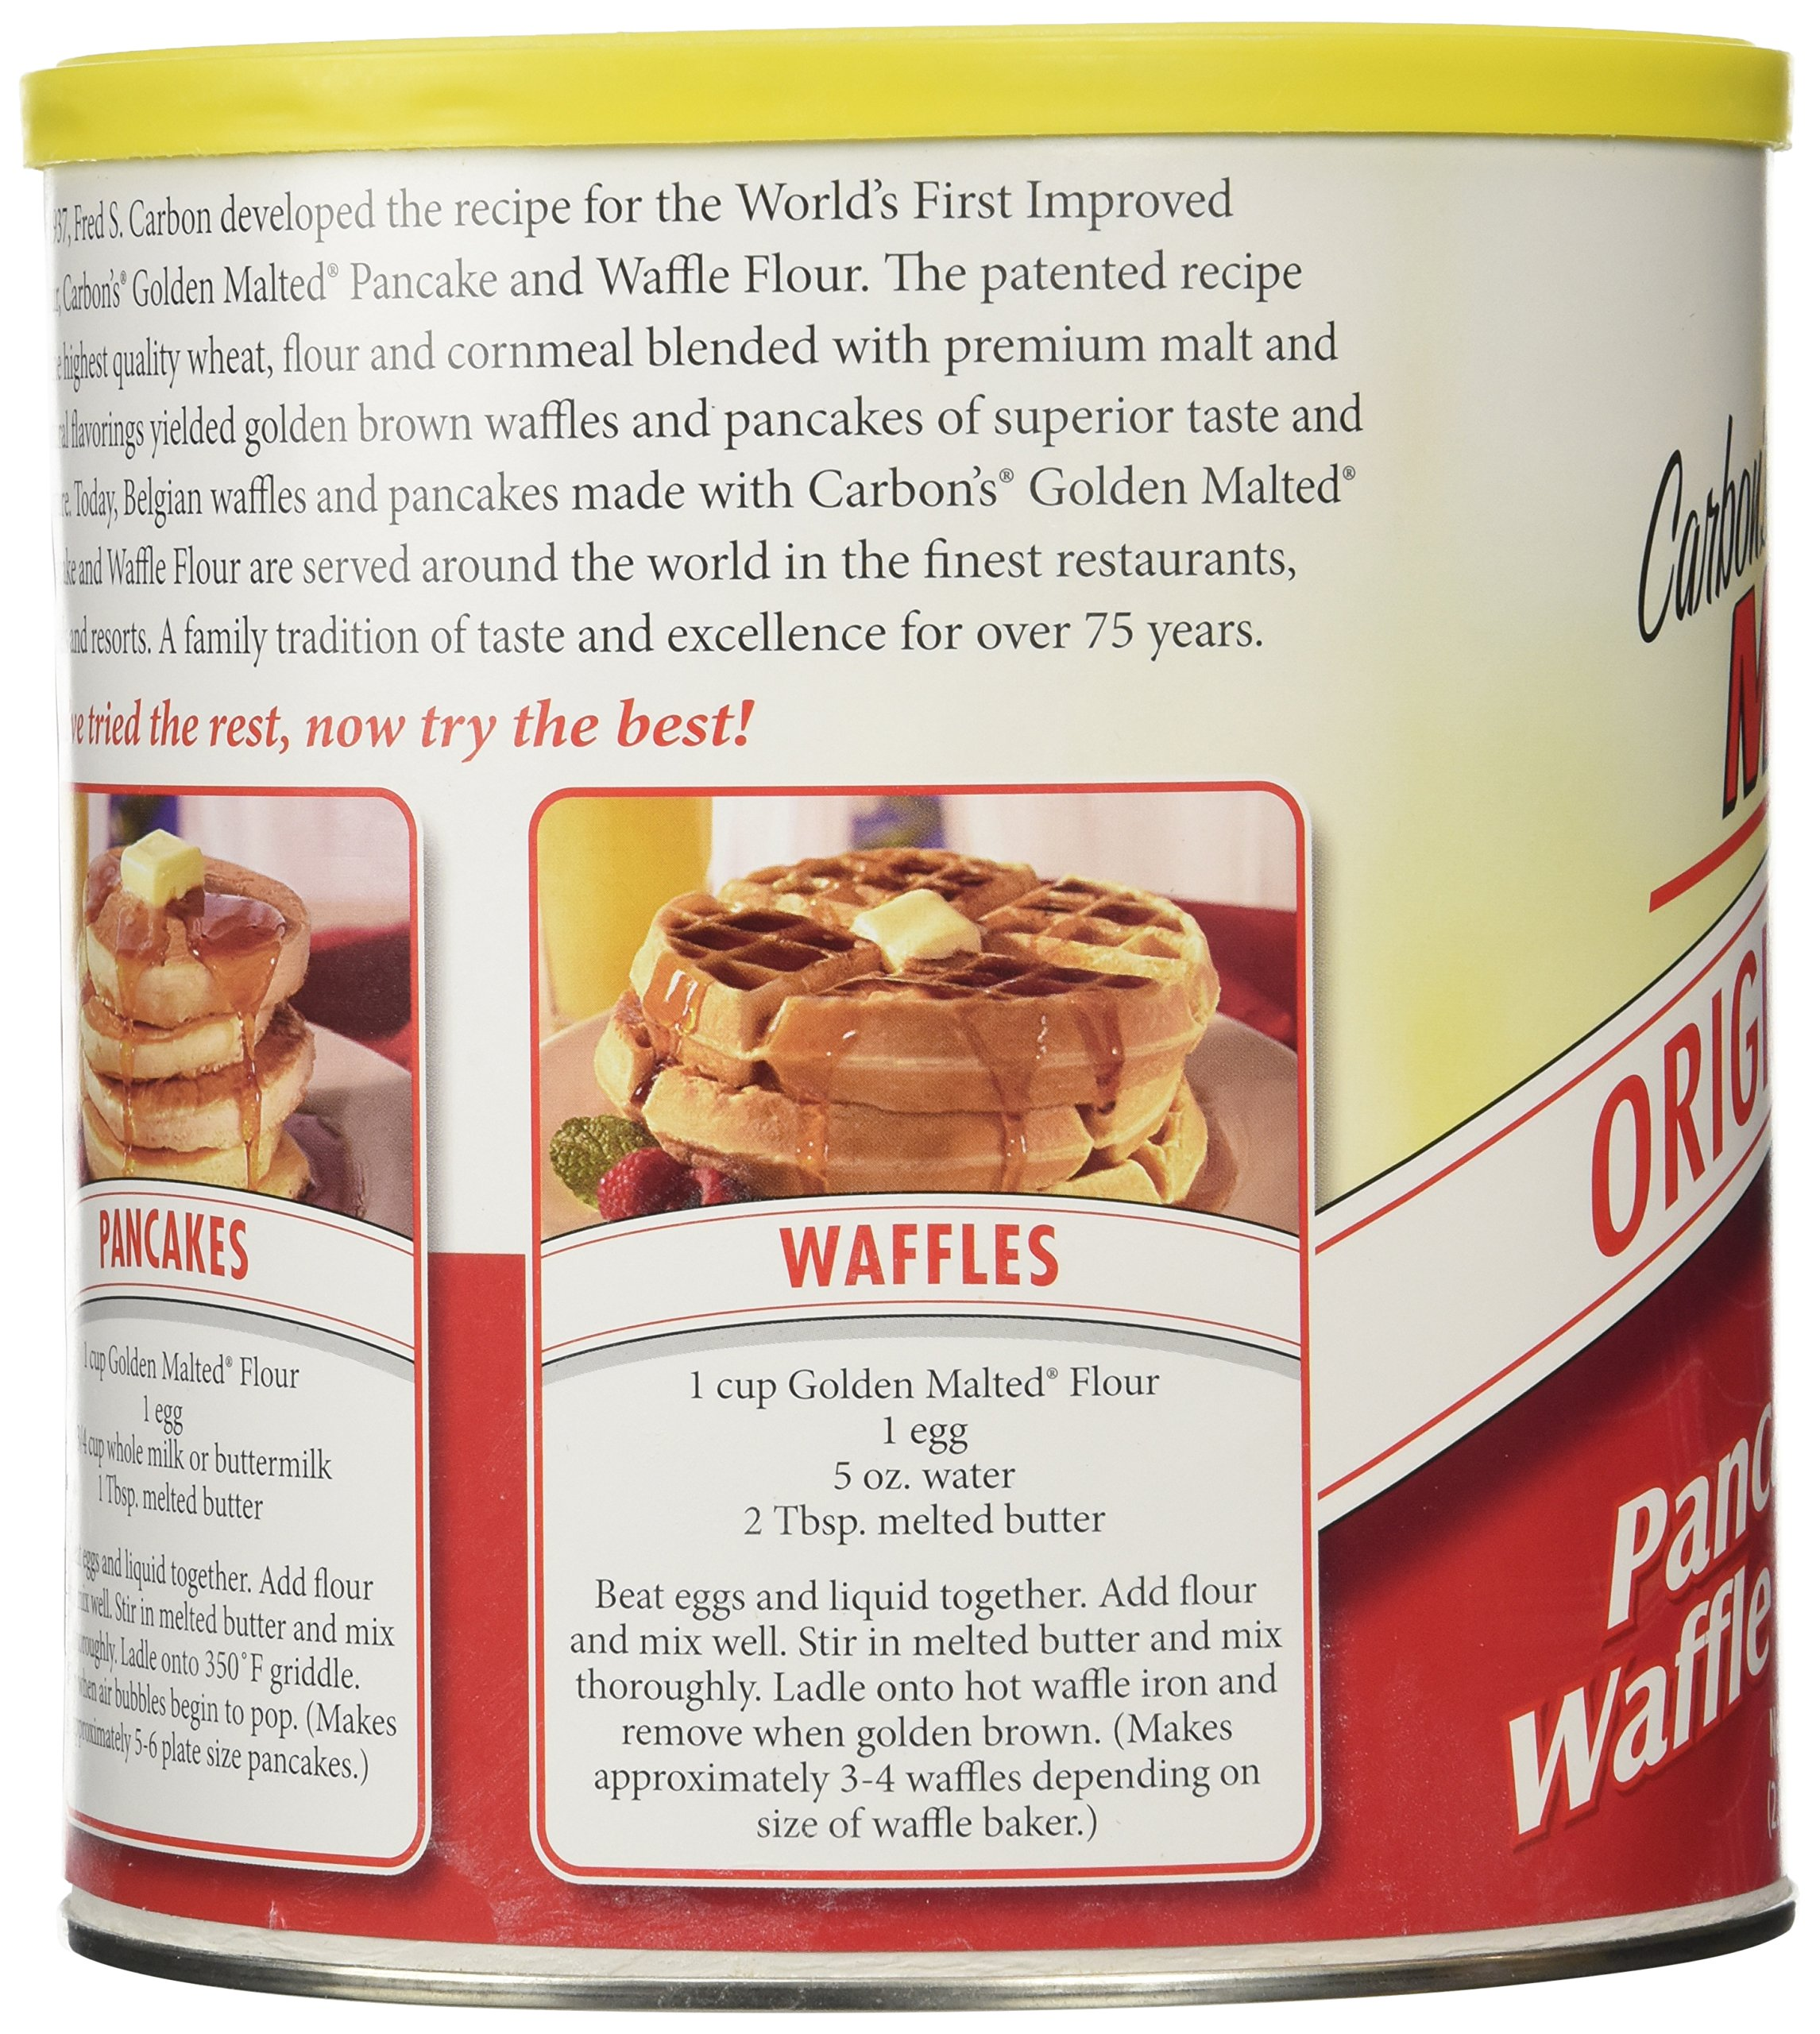 Golden Malted Waffle And Pancake Flour Original 33 Ounce Can